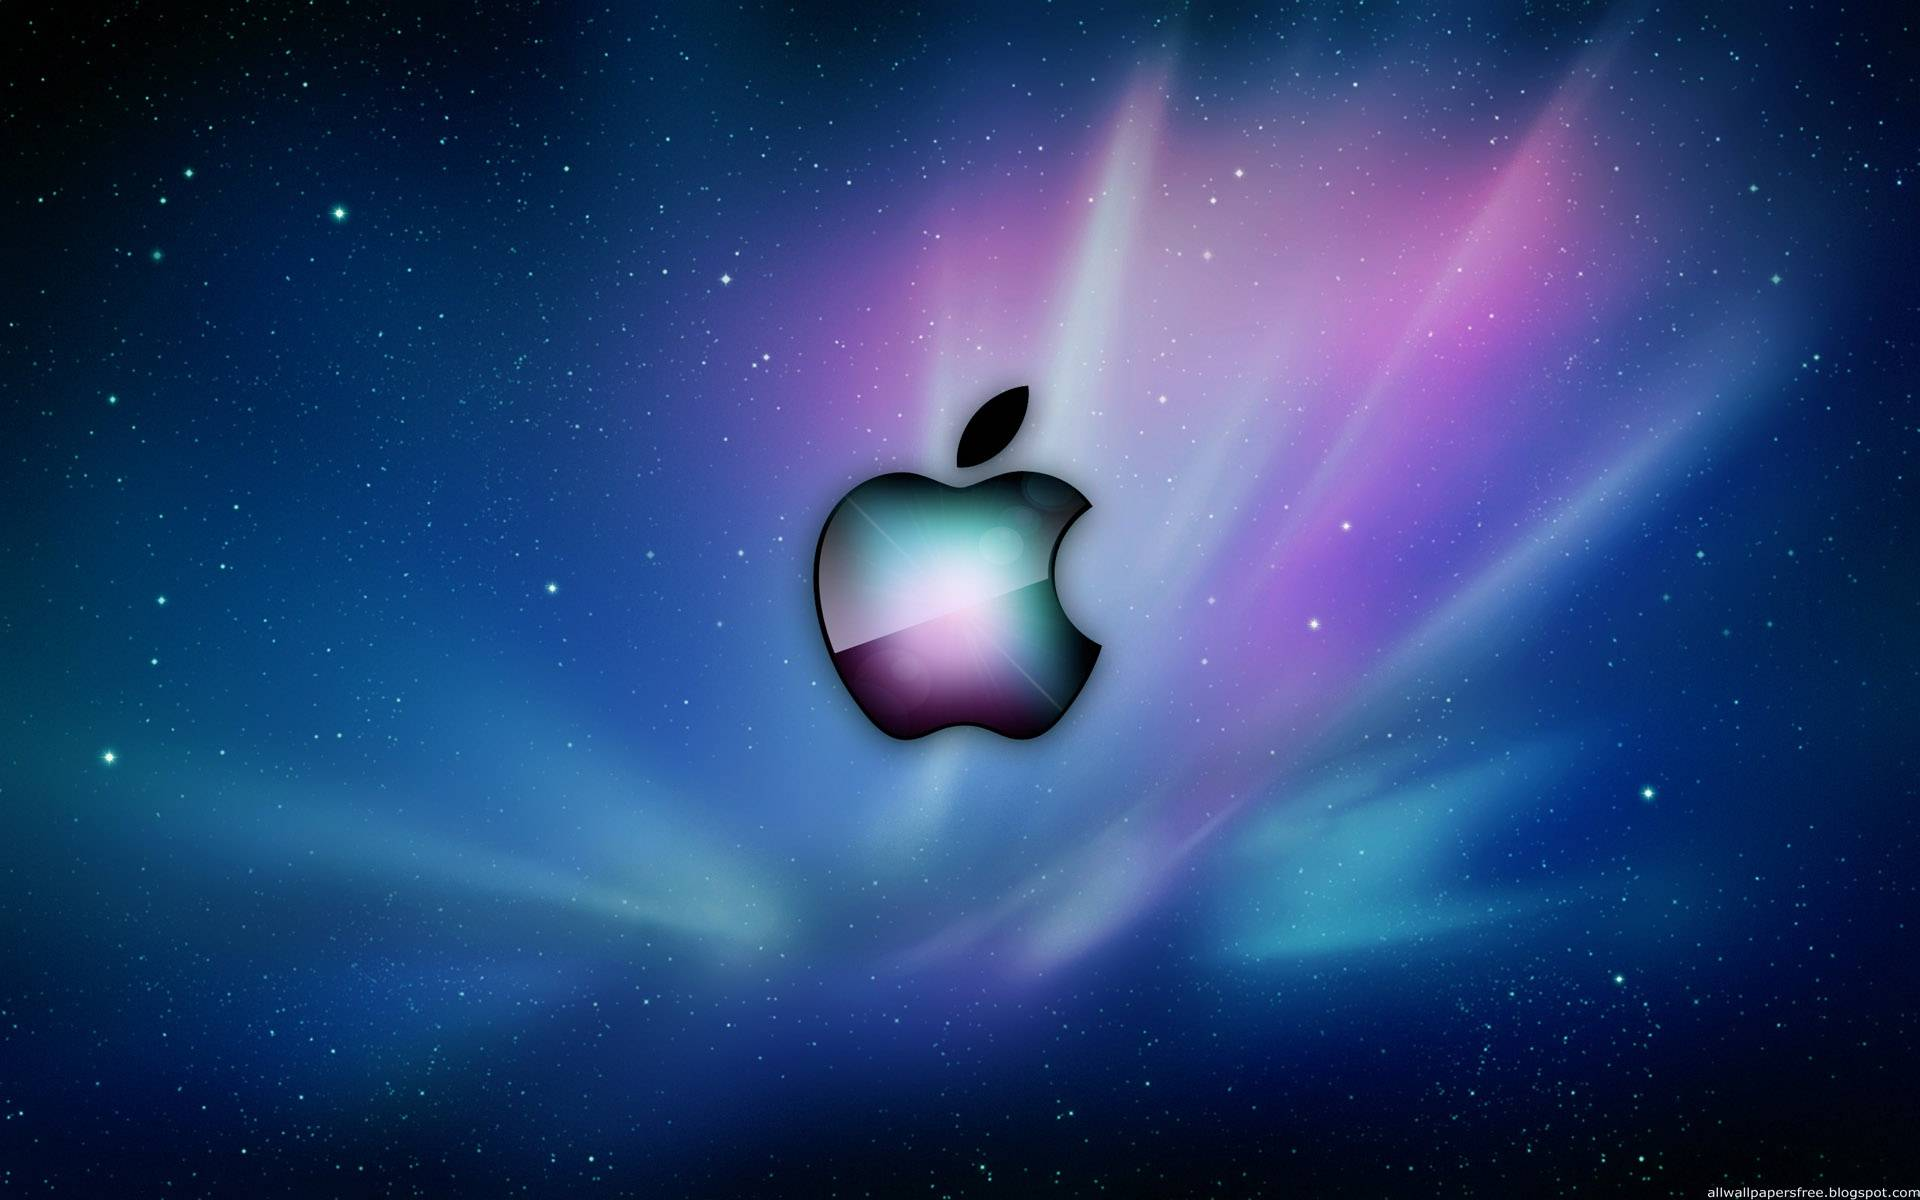 apple wallpaper 1920x1200 44287